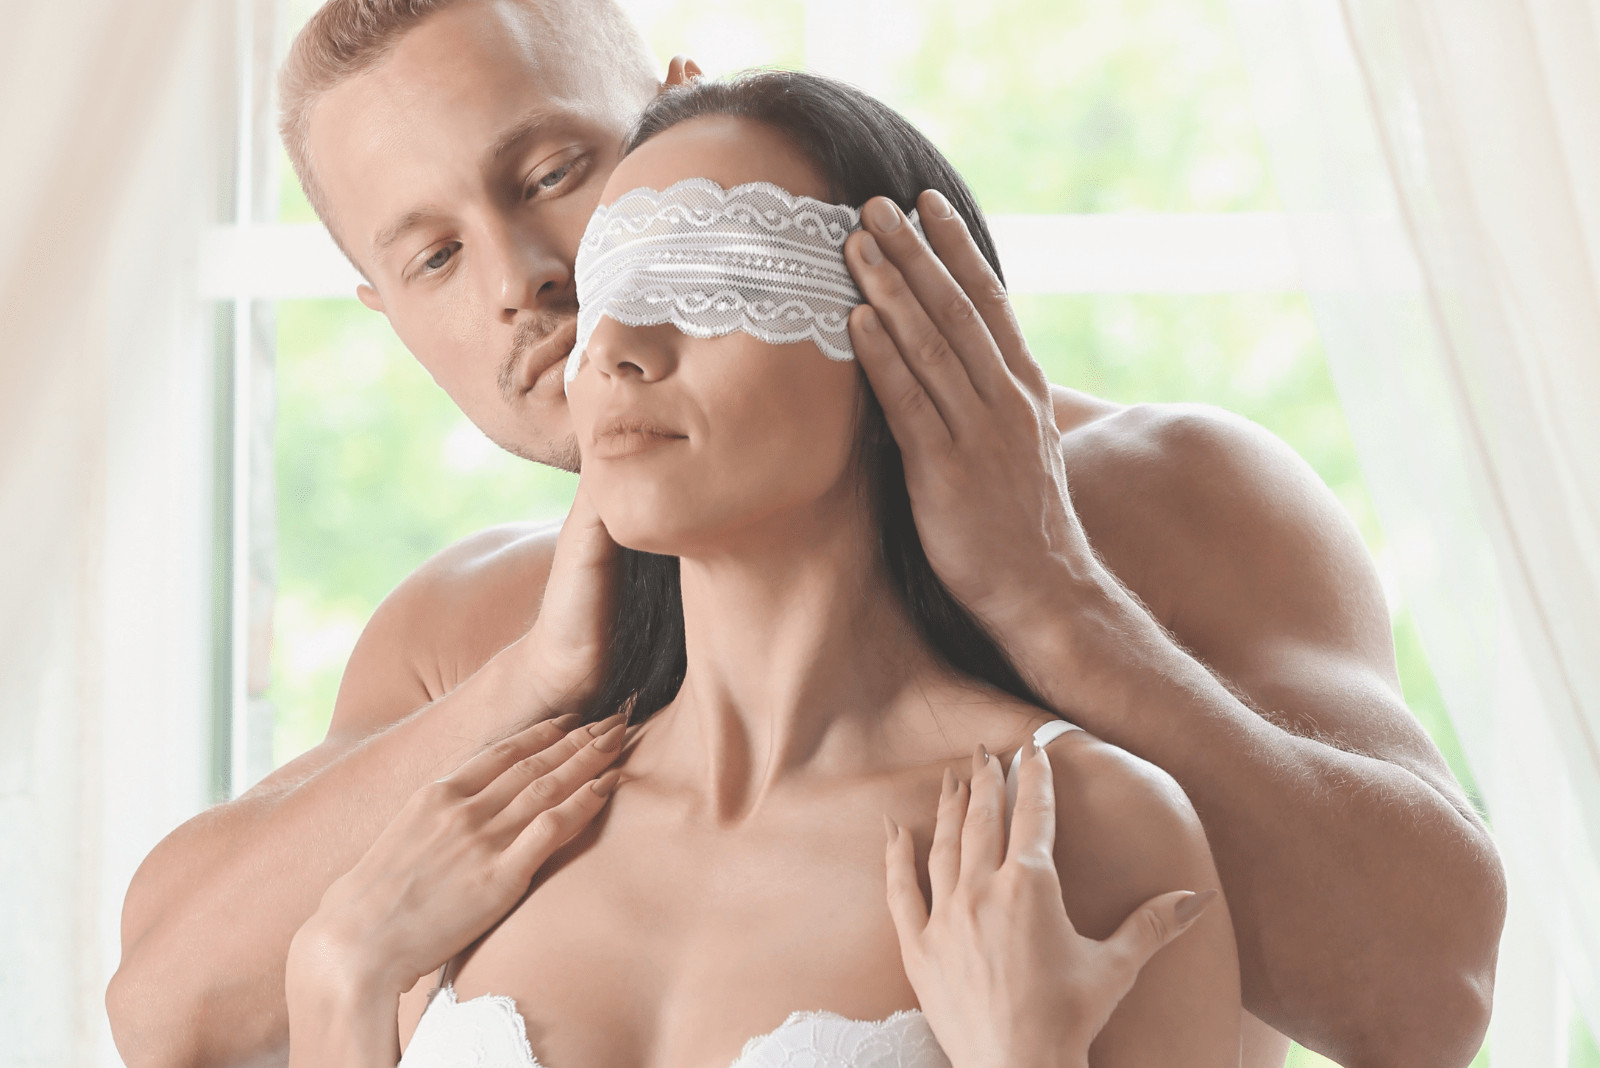 woman in lingerie blindfolded by a shirtless man